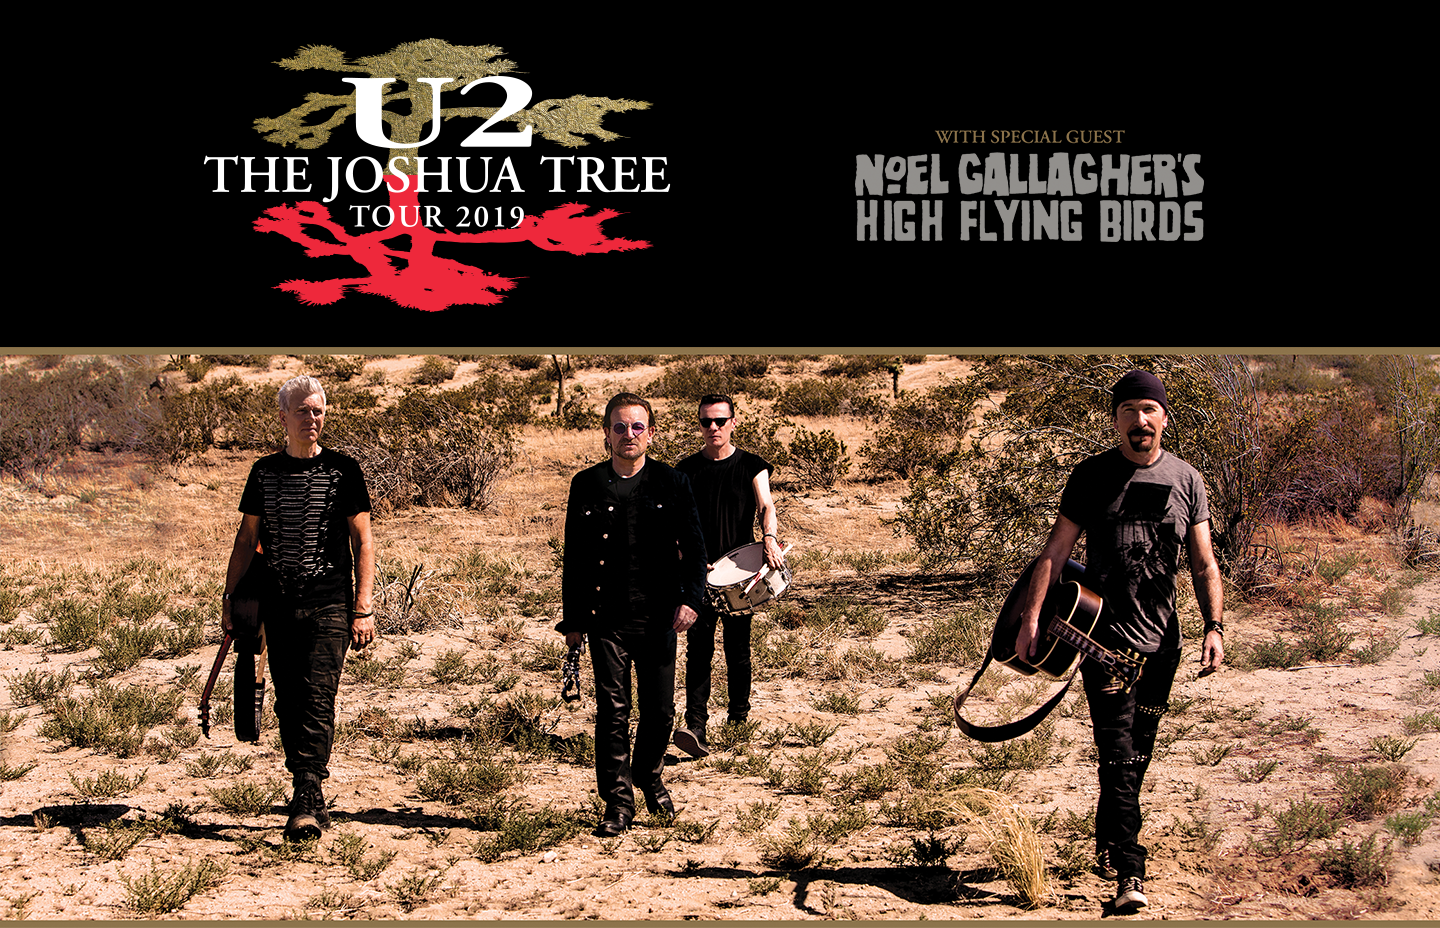 u2songs | Updated Rumours: NZ, Australia, Asia U2 Tour in 2019 |